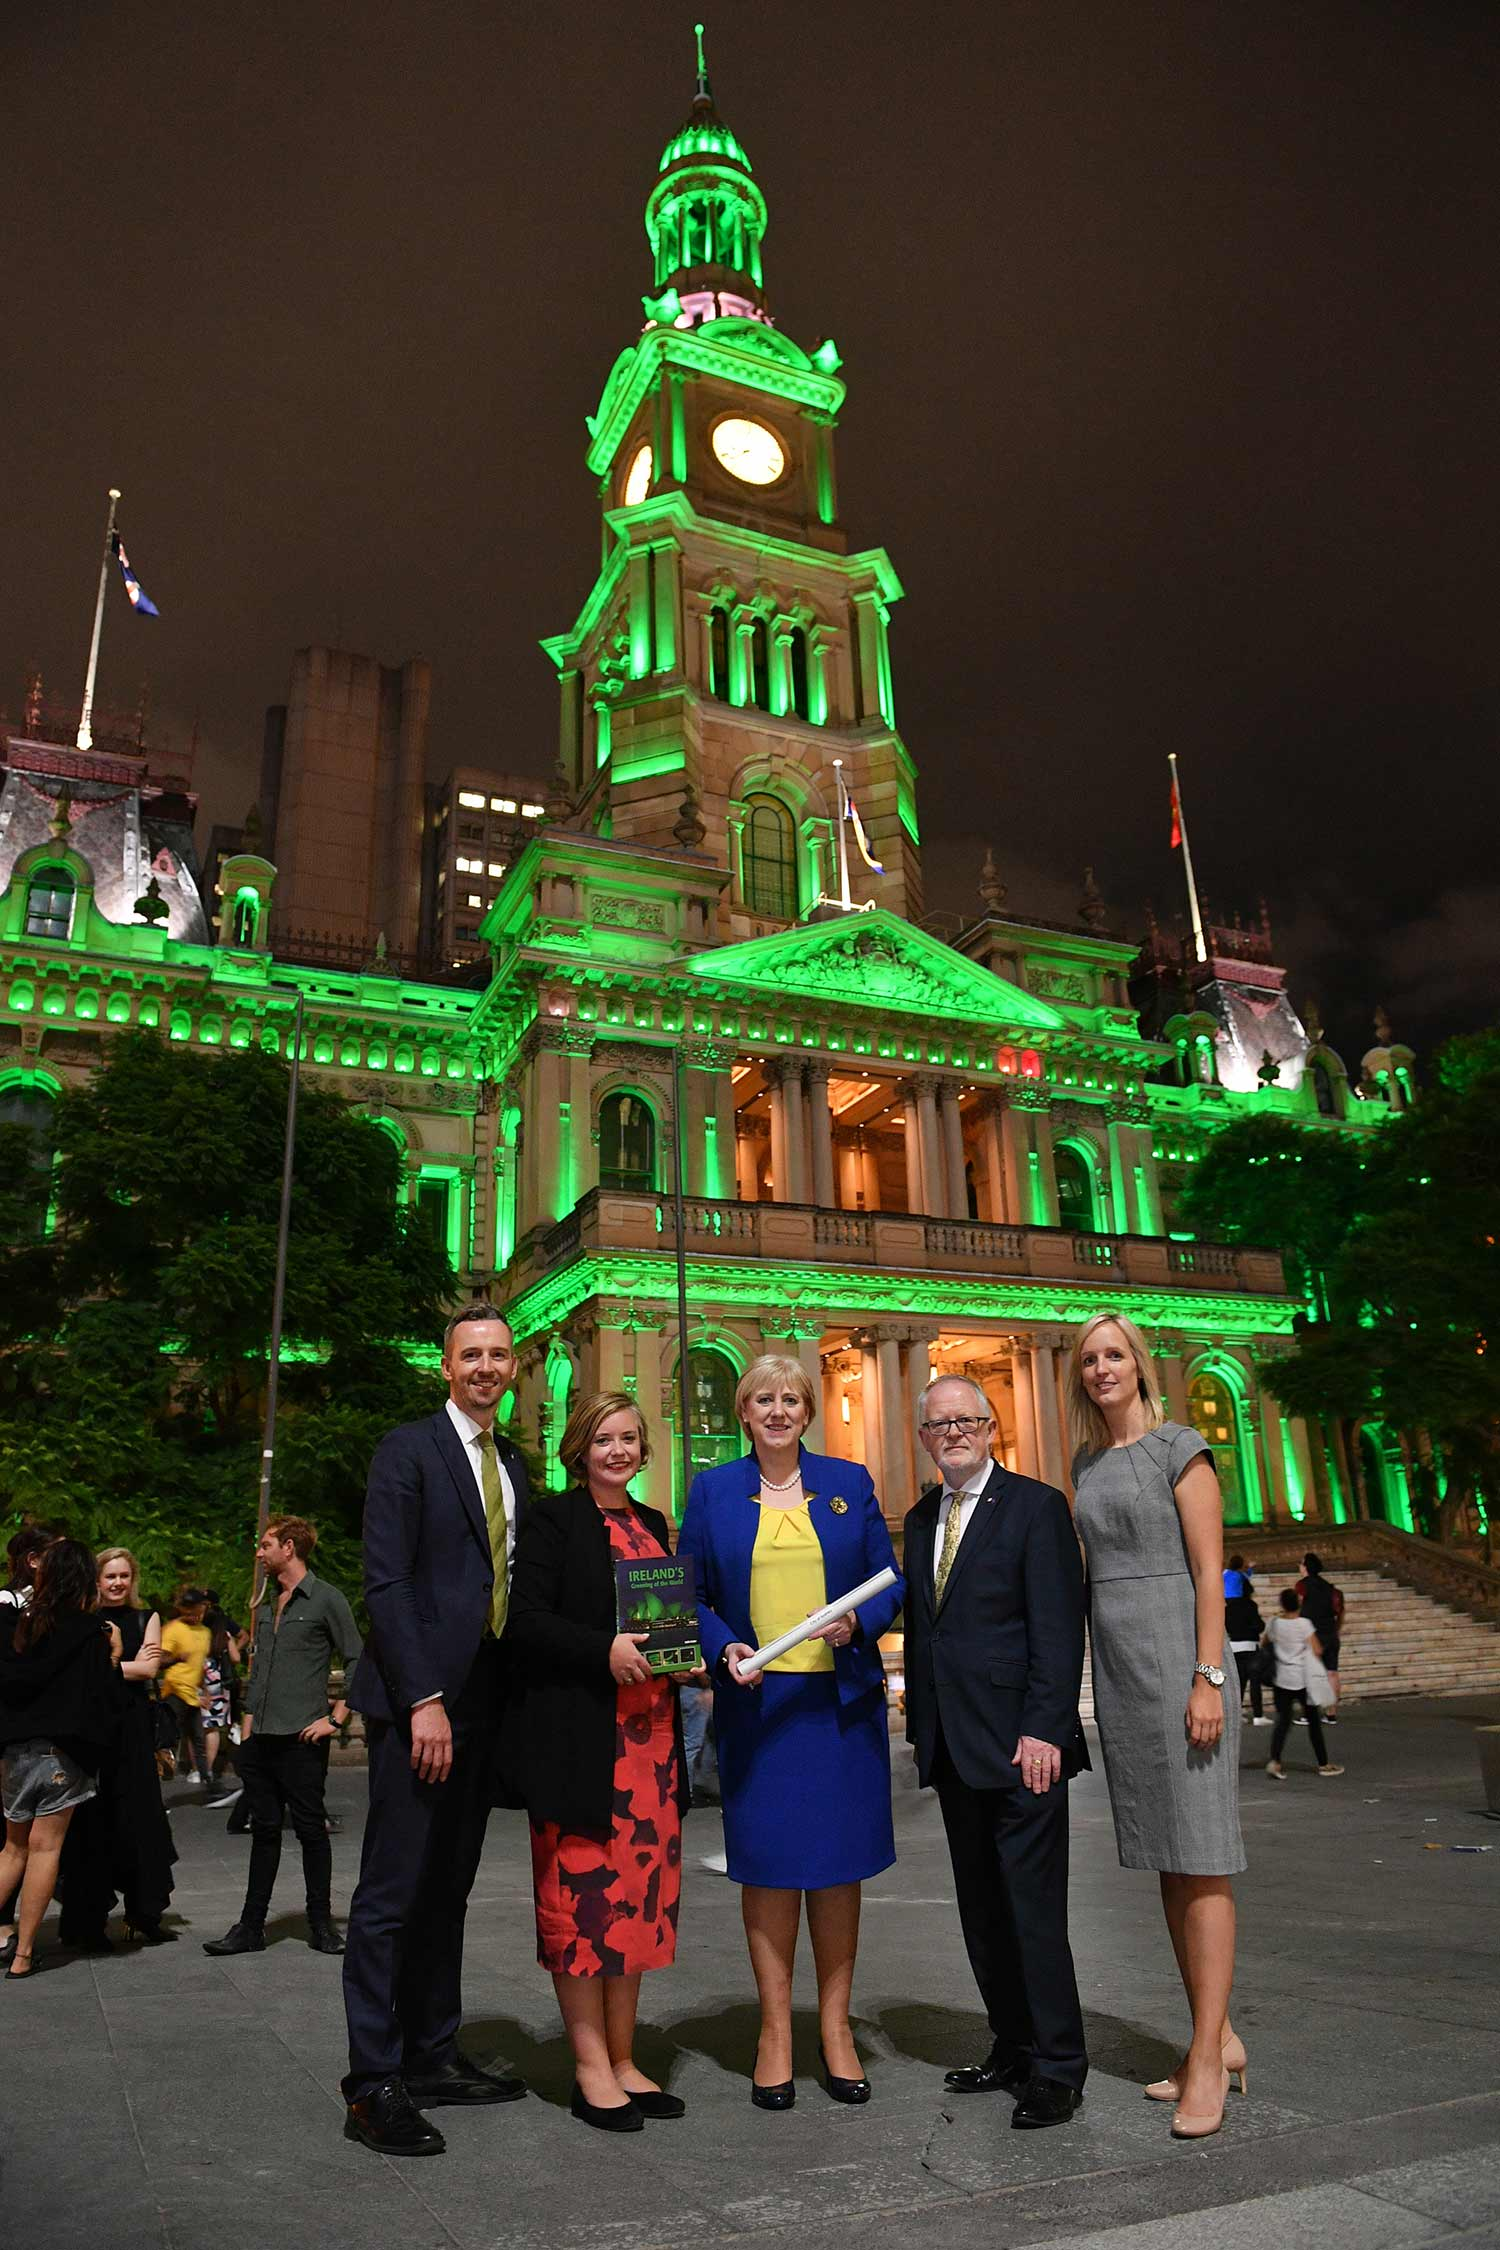 Pictured at a green-lit Sydney Town Hall are (from left): Owen Feeney, Consul General of Ireland; Linda Scott, Deputy Lord Mayor of Sydney; Heather Humphreys, Ireland's Minister for Business, Enterprise, and Innovation; Breandán Ó Caollaí, Irish Ambassador in Australia, and Sofia Hansson, director of, Tourism Ireland, Australia and New Zealand.